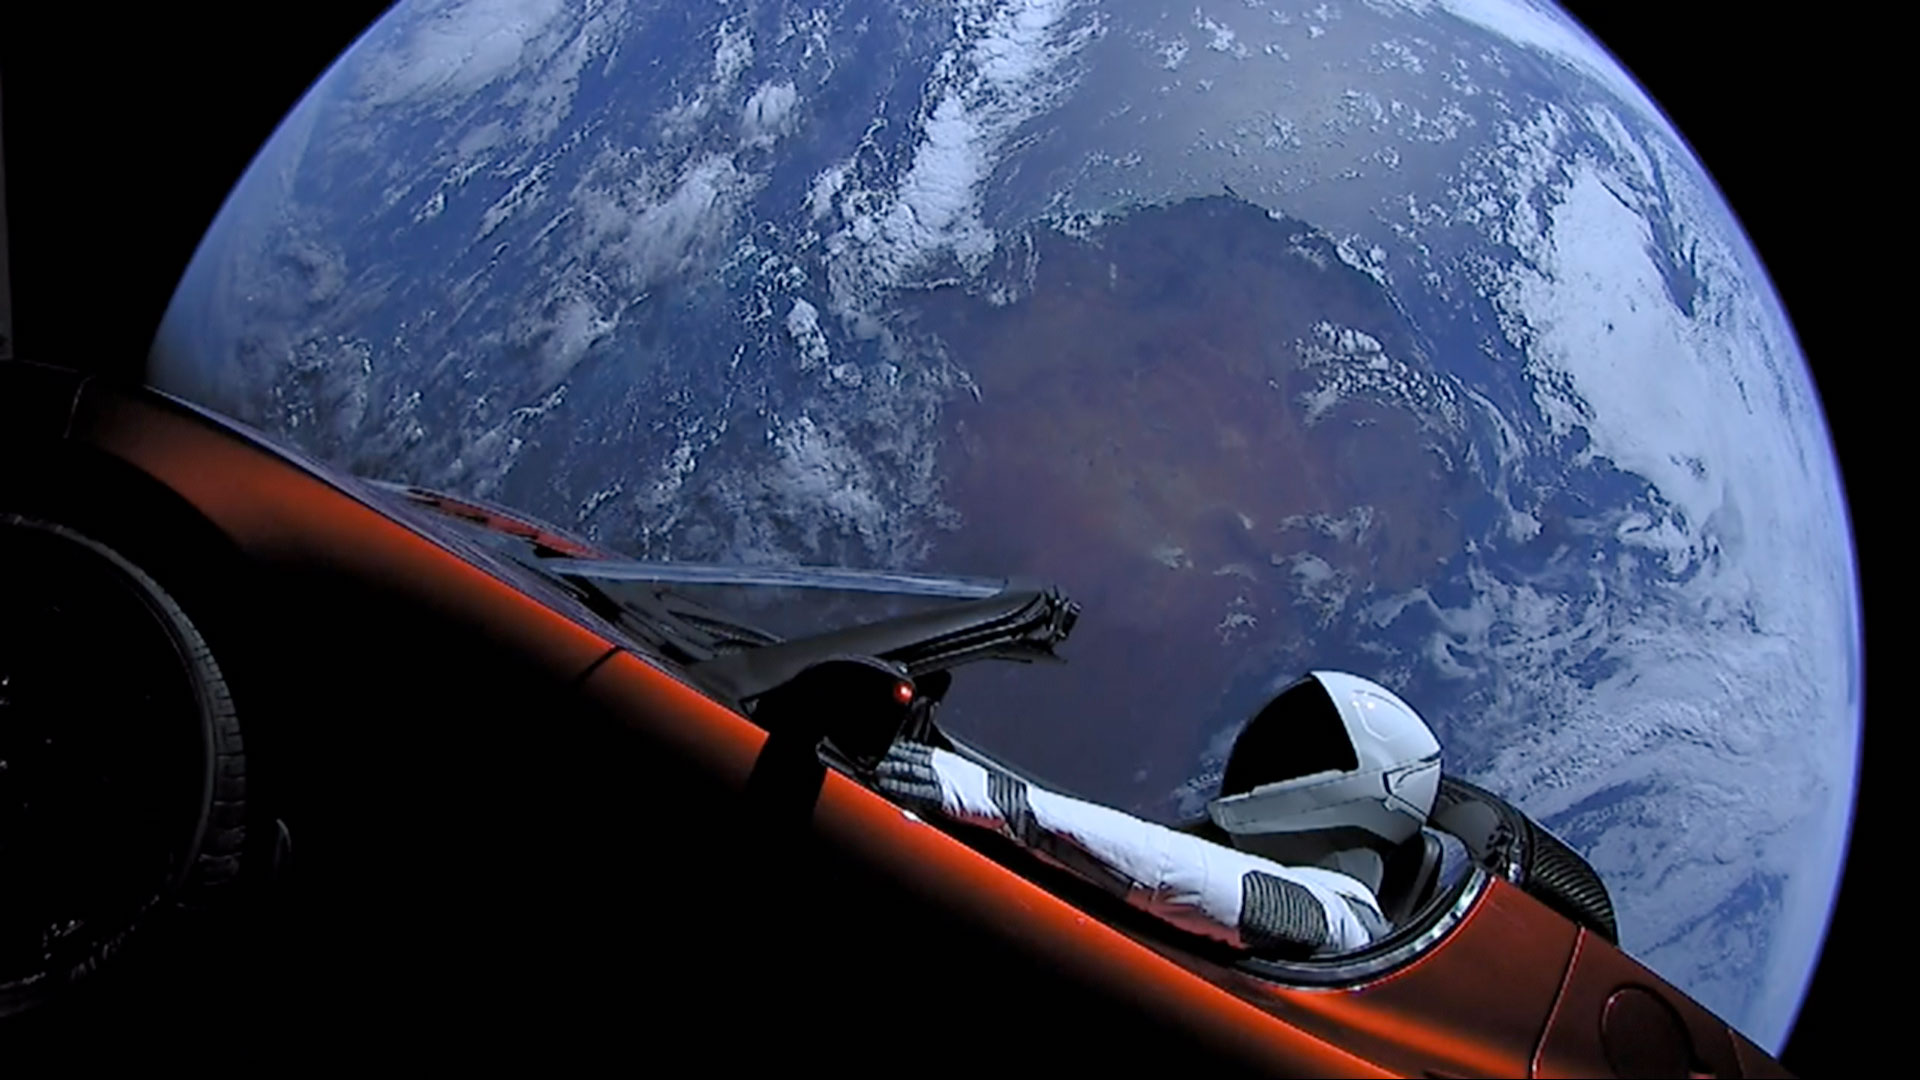 Fastest car in space